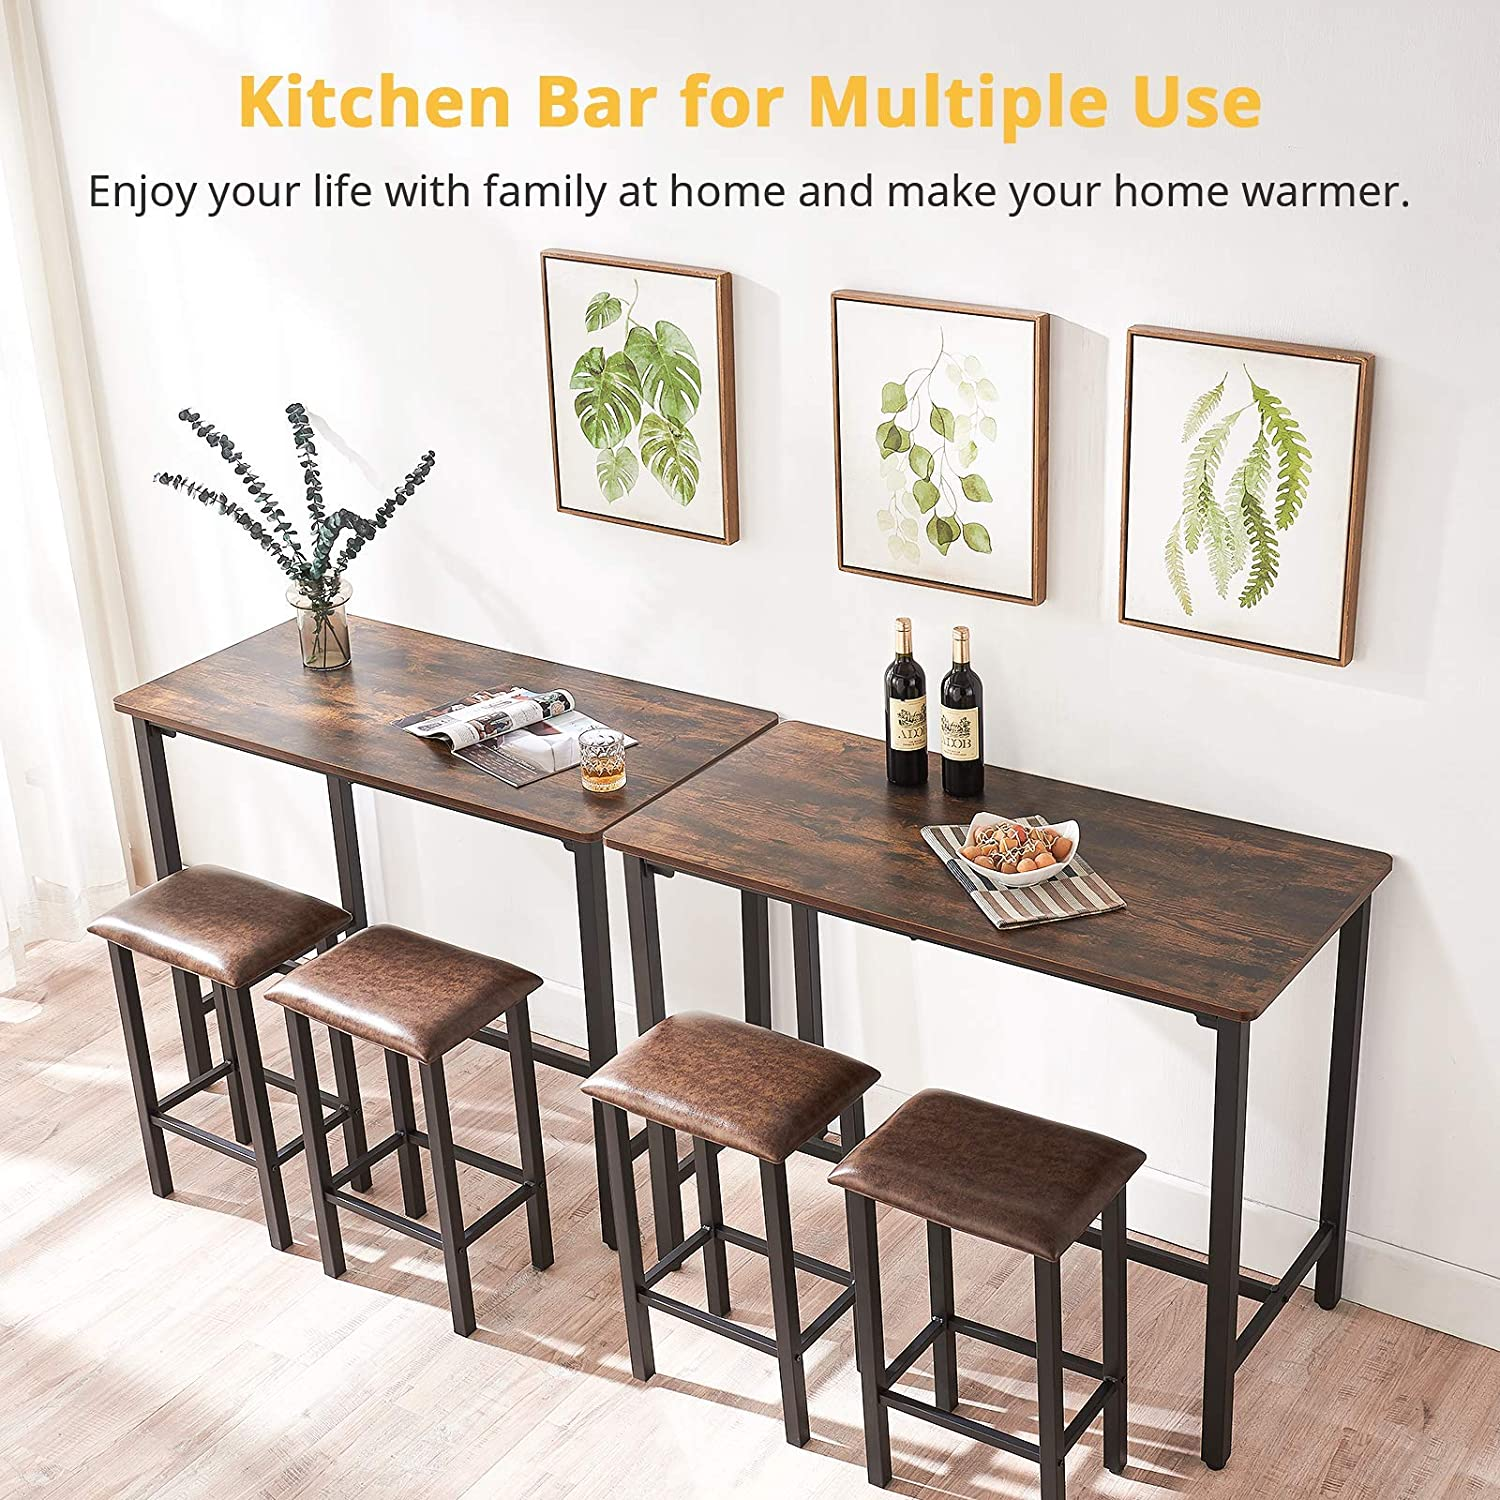 Smile Back Dining Table, Dining Table Set 9 Piece Bar Table with 9 Faux  Leather Barstools 9.9'' Breakfast Bar Kitchen Counter with Bar Chairs, ...